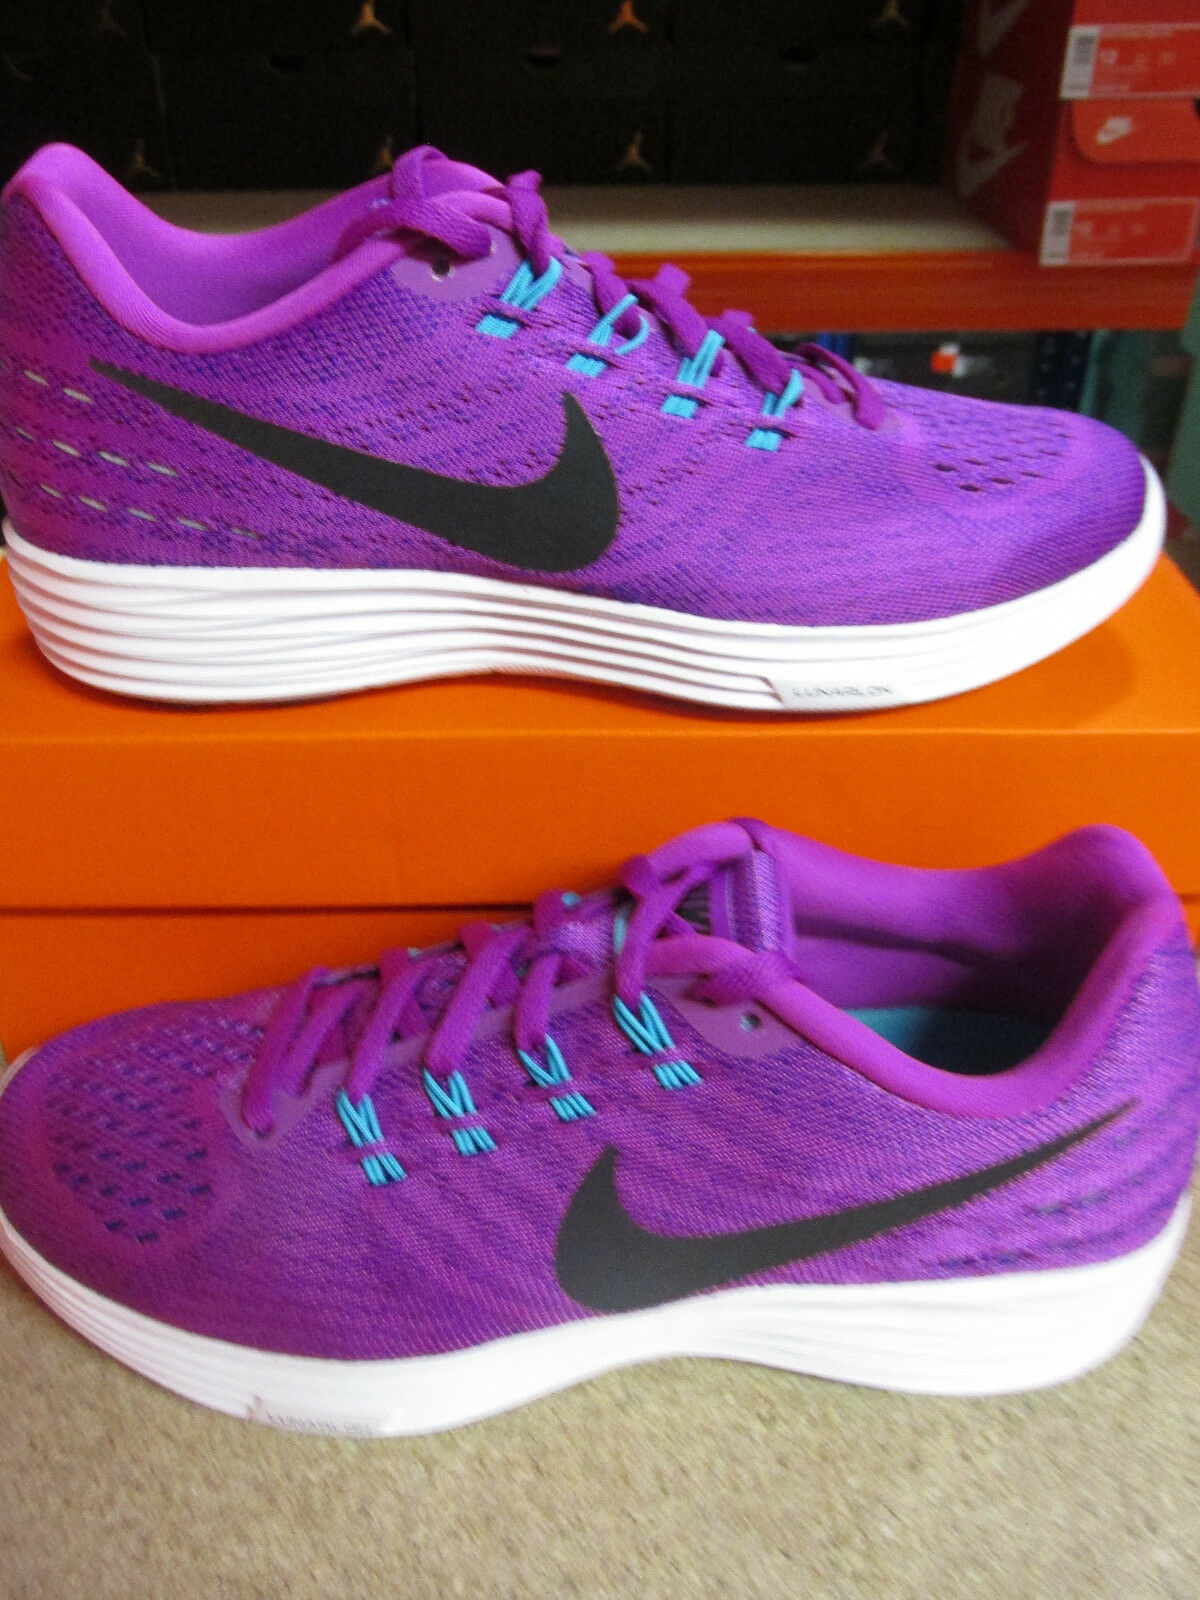 Nike Womens Lunartempo 2 Running Trainers 818098 504 Sneakers Shoes